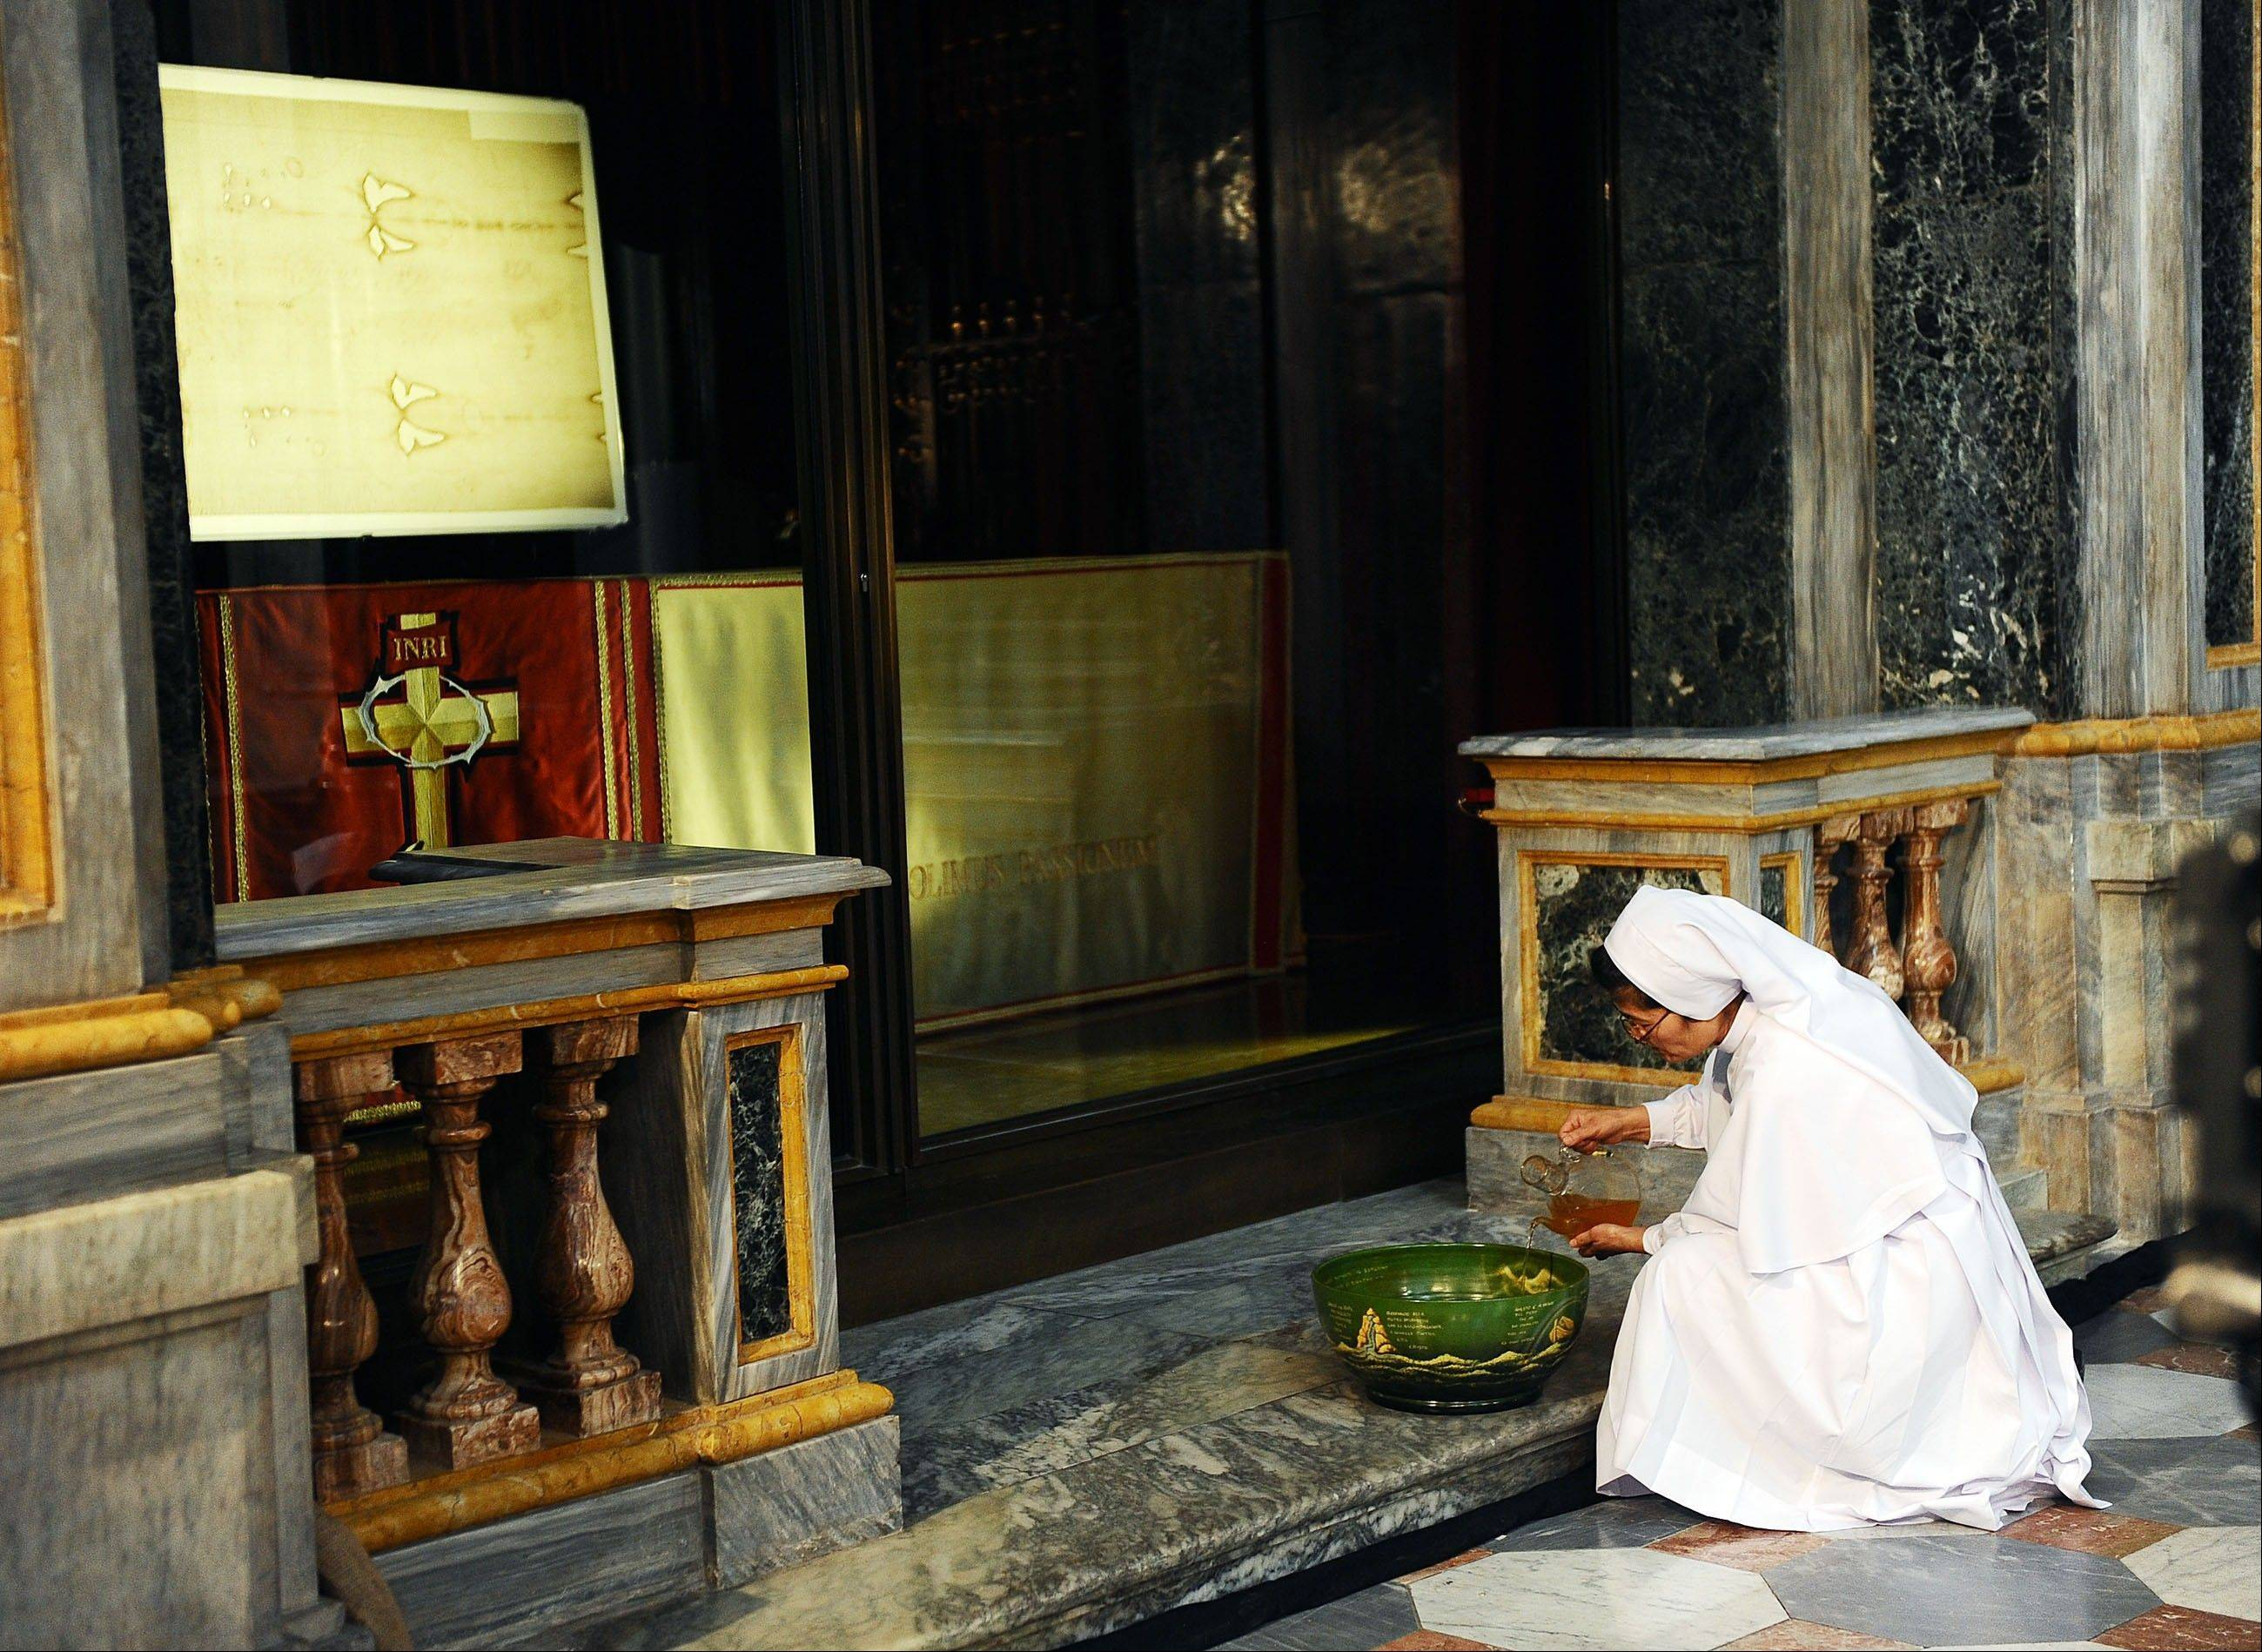 A nun pours oil in front of the Shroud of Turin Saturday that went on display for a special TV appearance, at the Turin cathedral, Italy. The Shroud went on display amid new research disputing claims it's a medieval fake and purporting to date the linen some say was Jesus' burial cloth to around the time of his death.